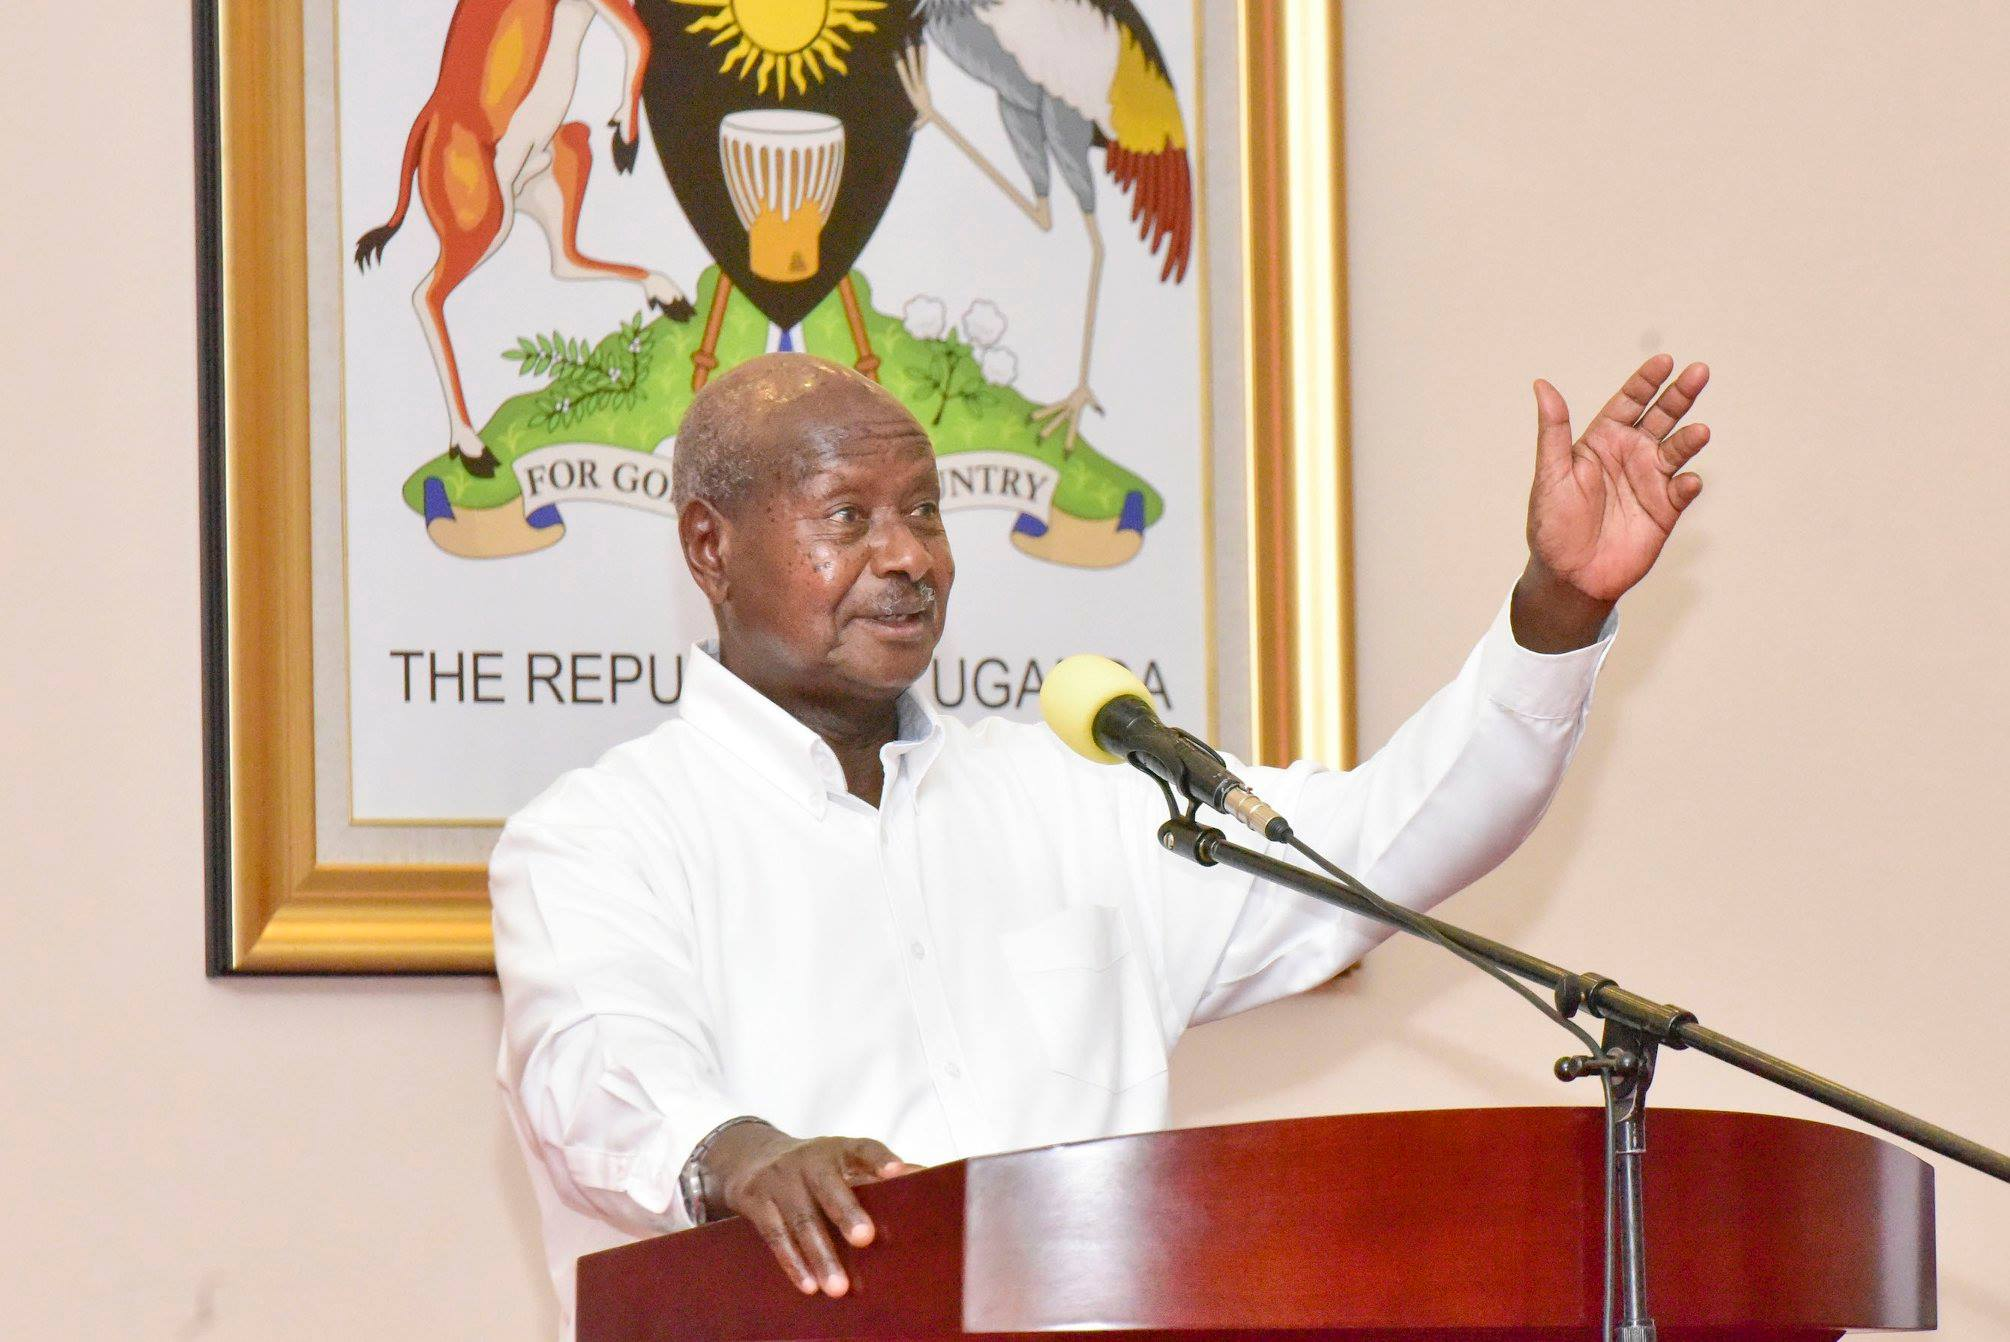 President Museveni addresses LC 5 Chairpersons at State House Entebbe (PPU PHOTO)